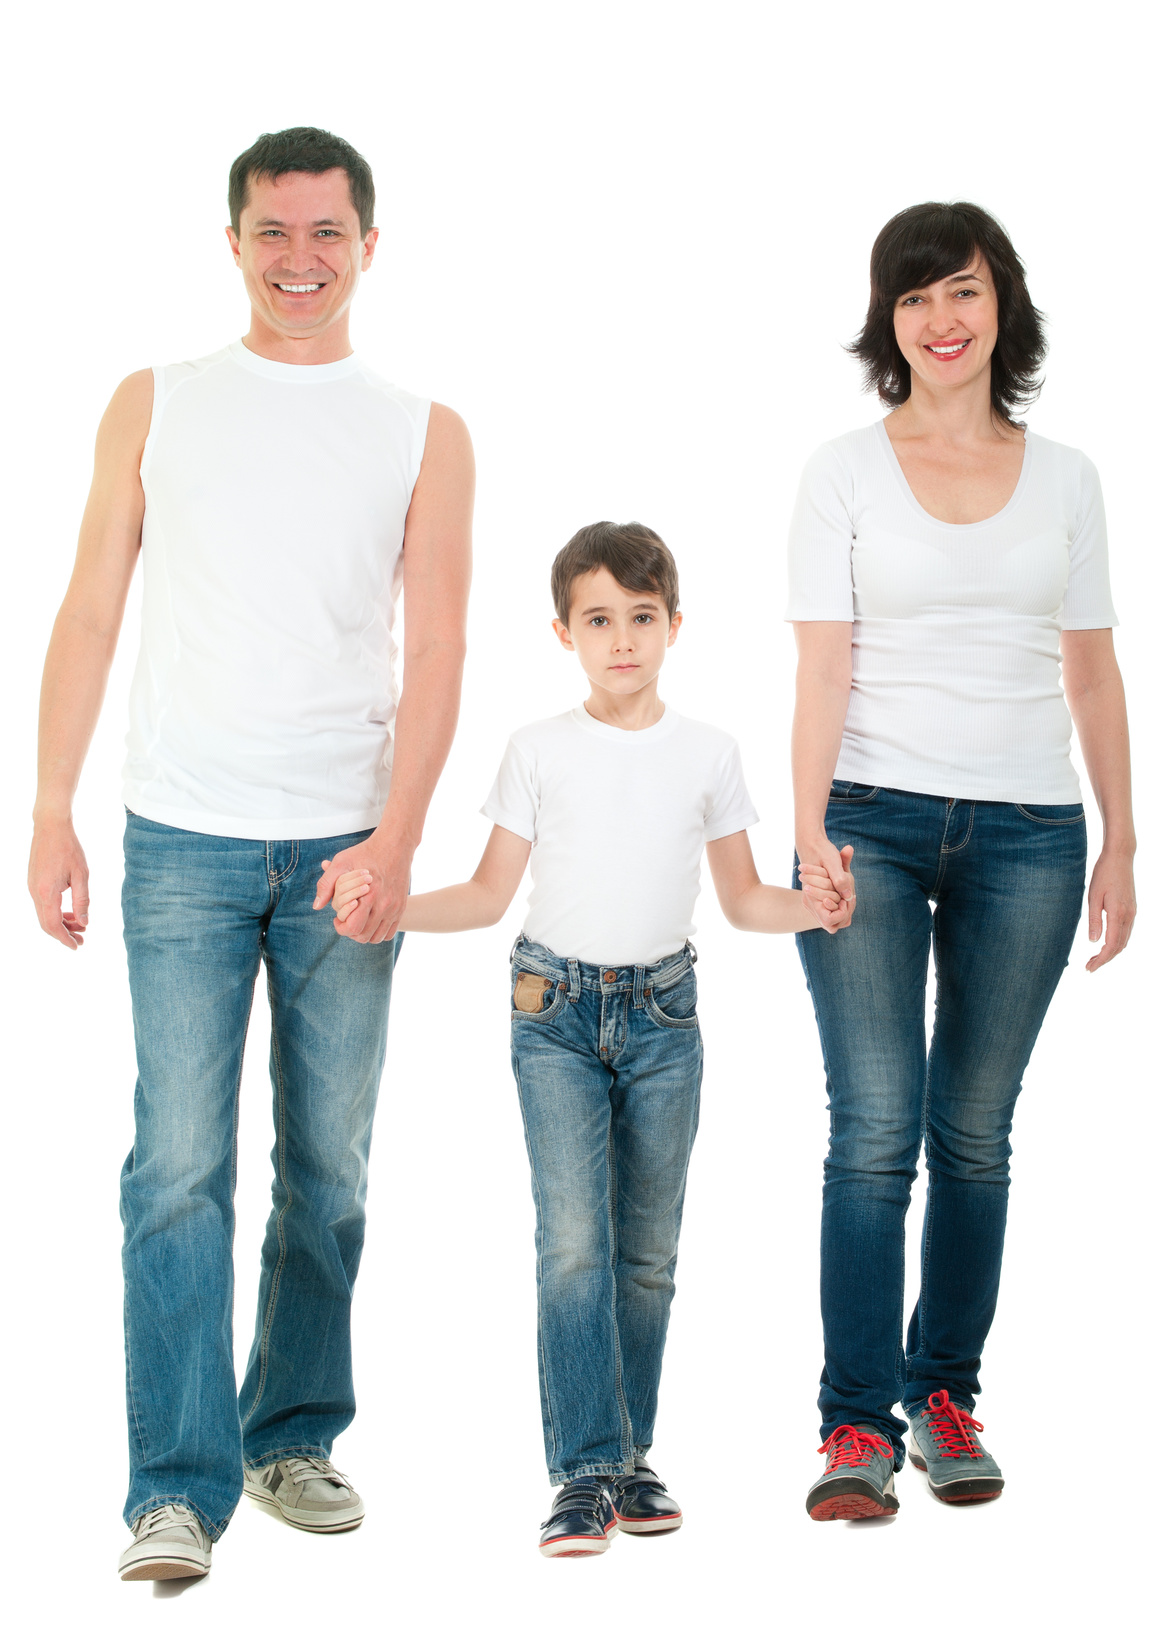 Smiling family walking in jeans full body holding hands isolated on white